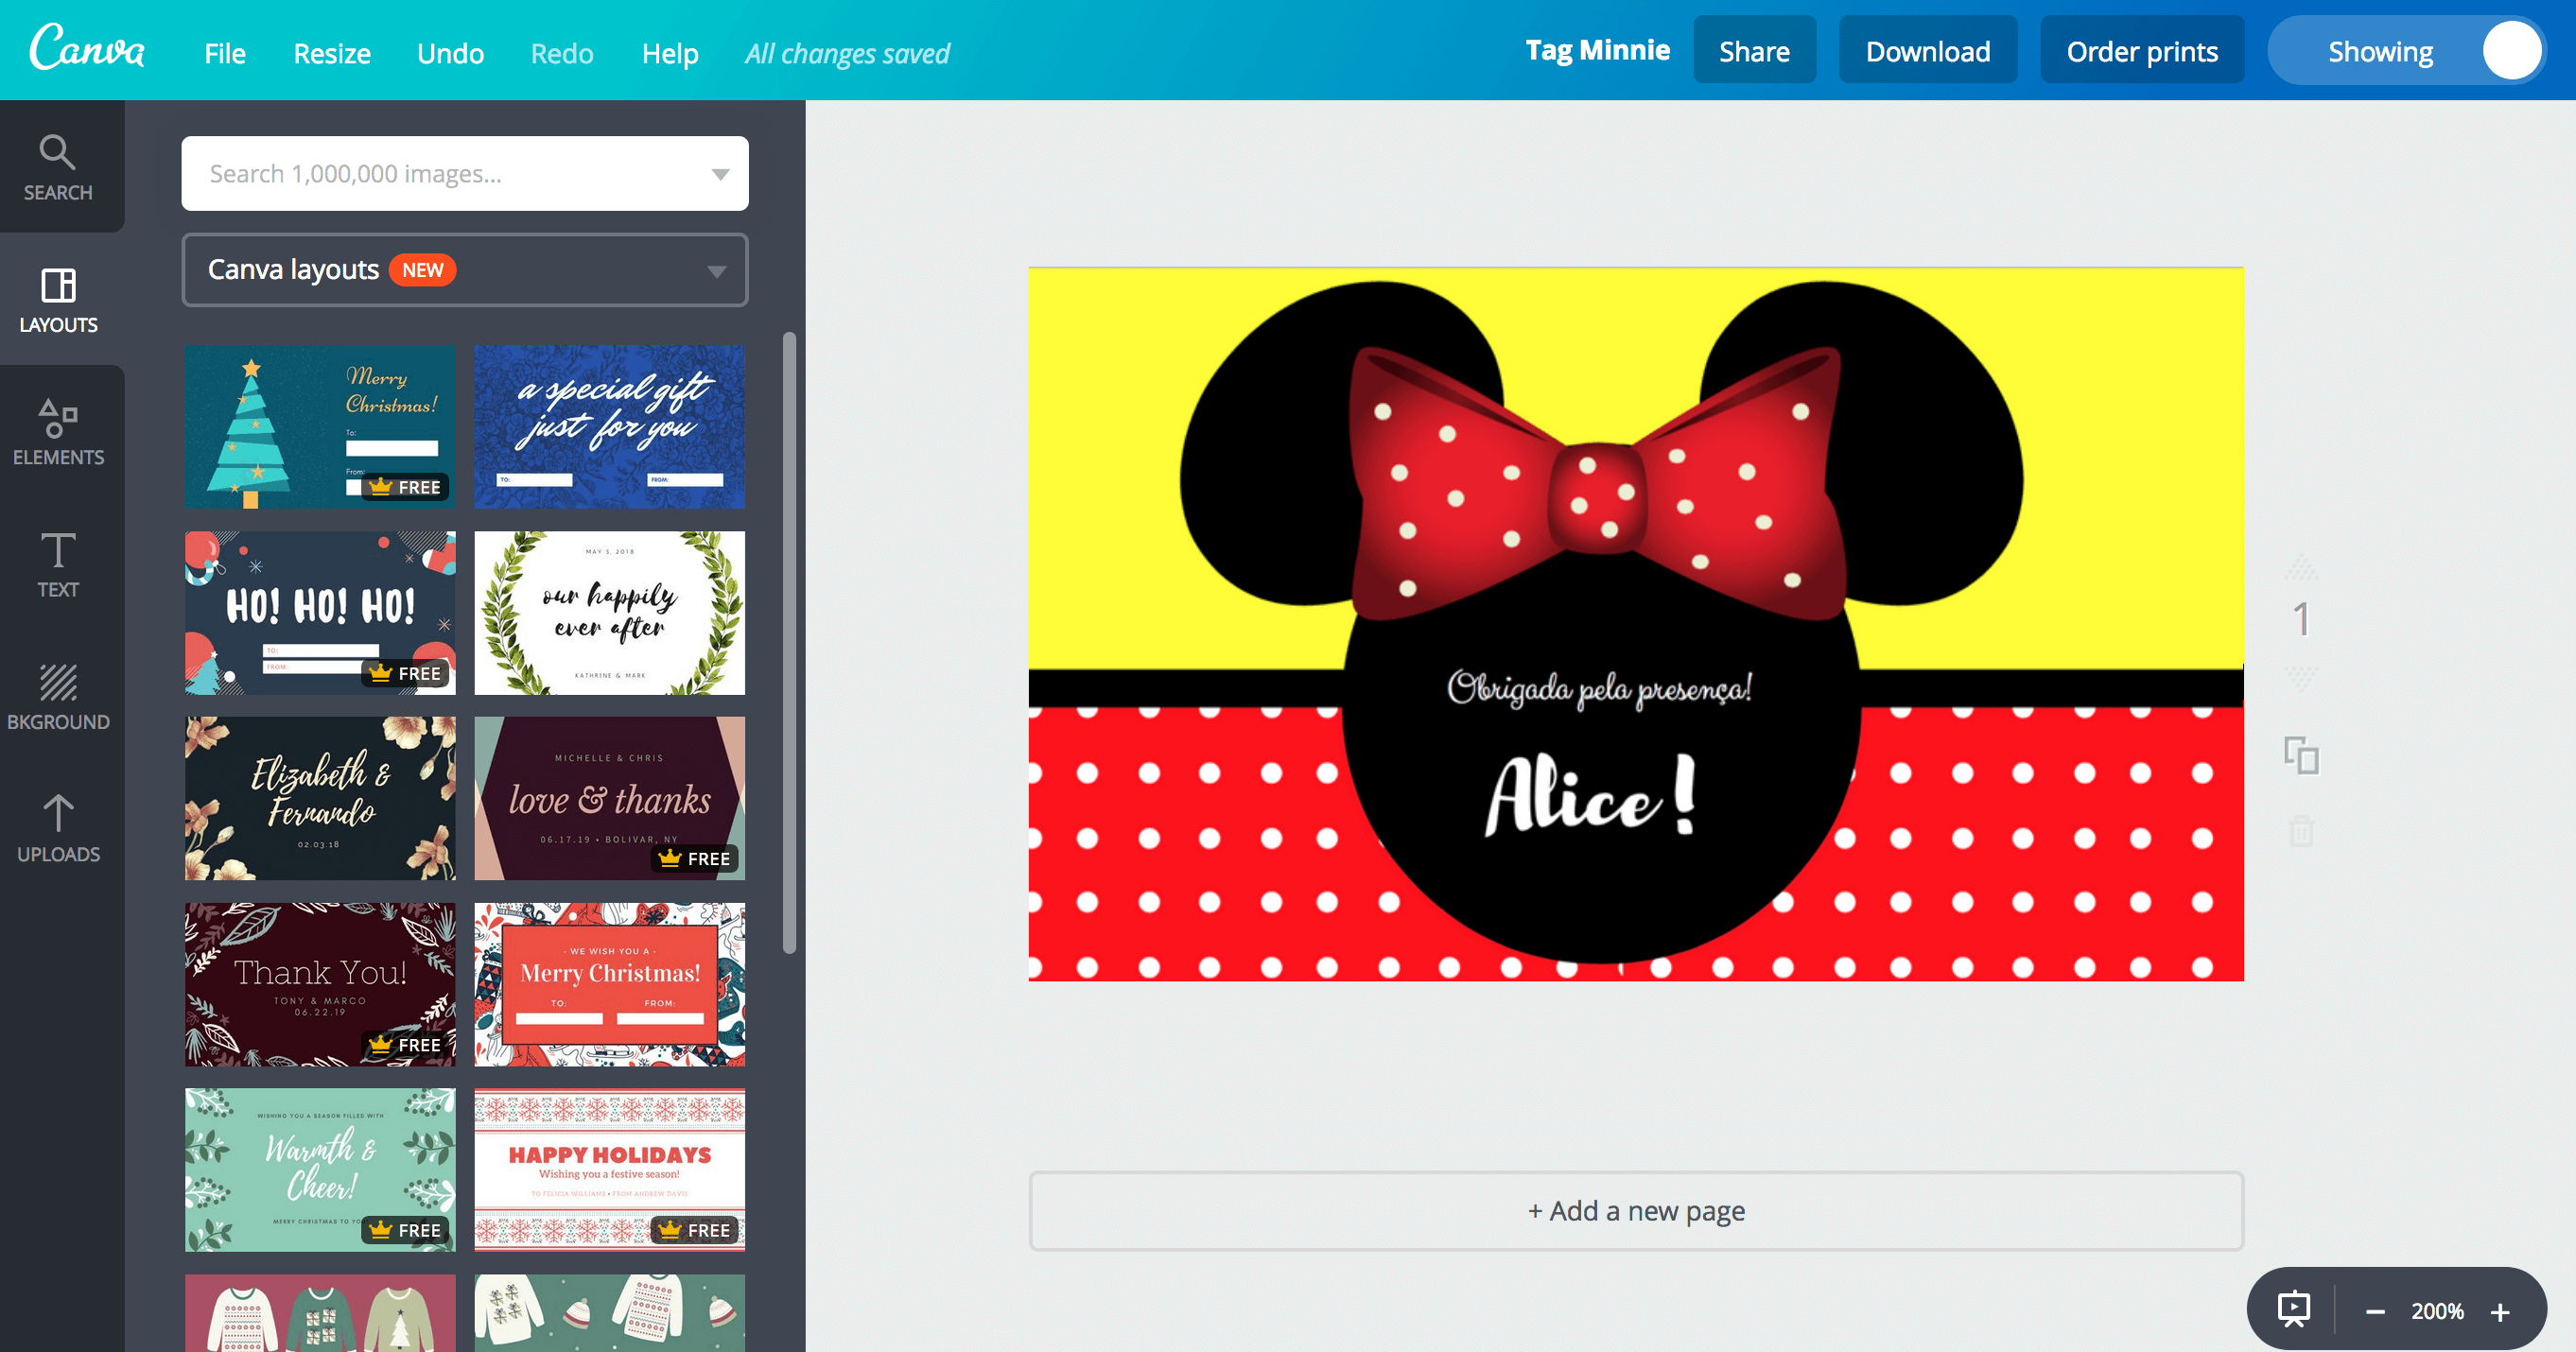 Tags da Minnie